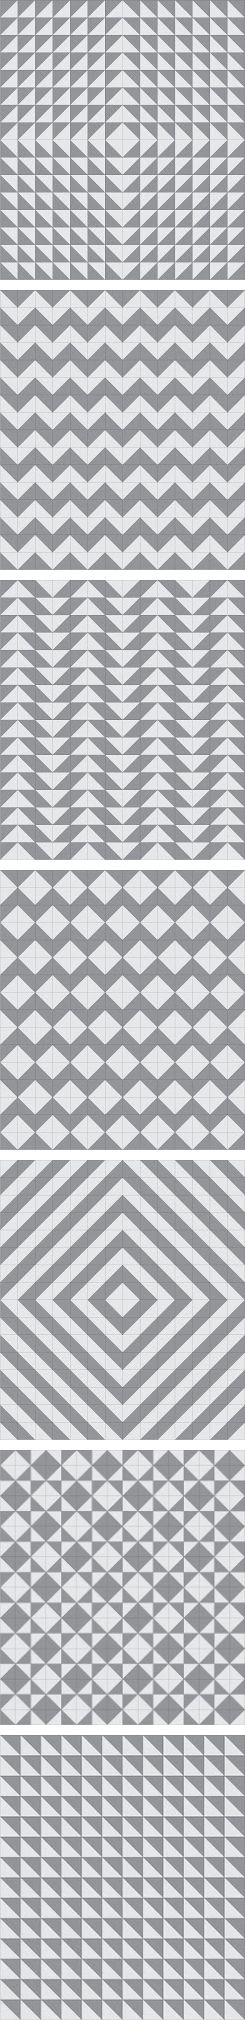 Seven half-square triangle layout patterns.  http://demonicmarshmallow.blogspot.com/2013/02/diagonal-two-color-squares-tutorial